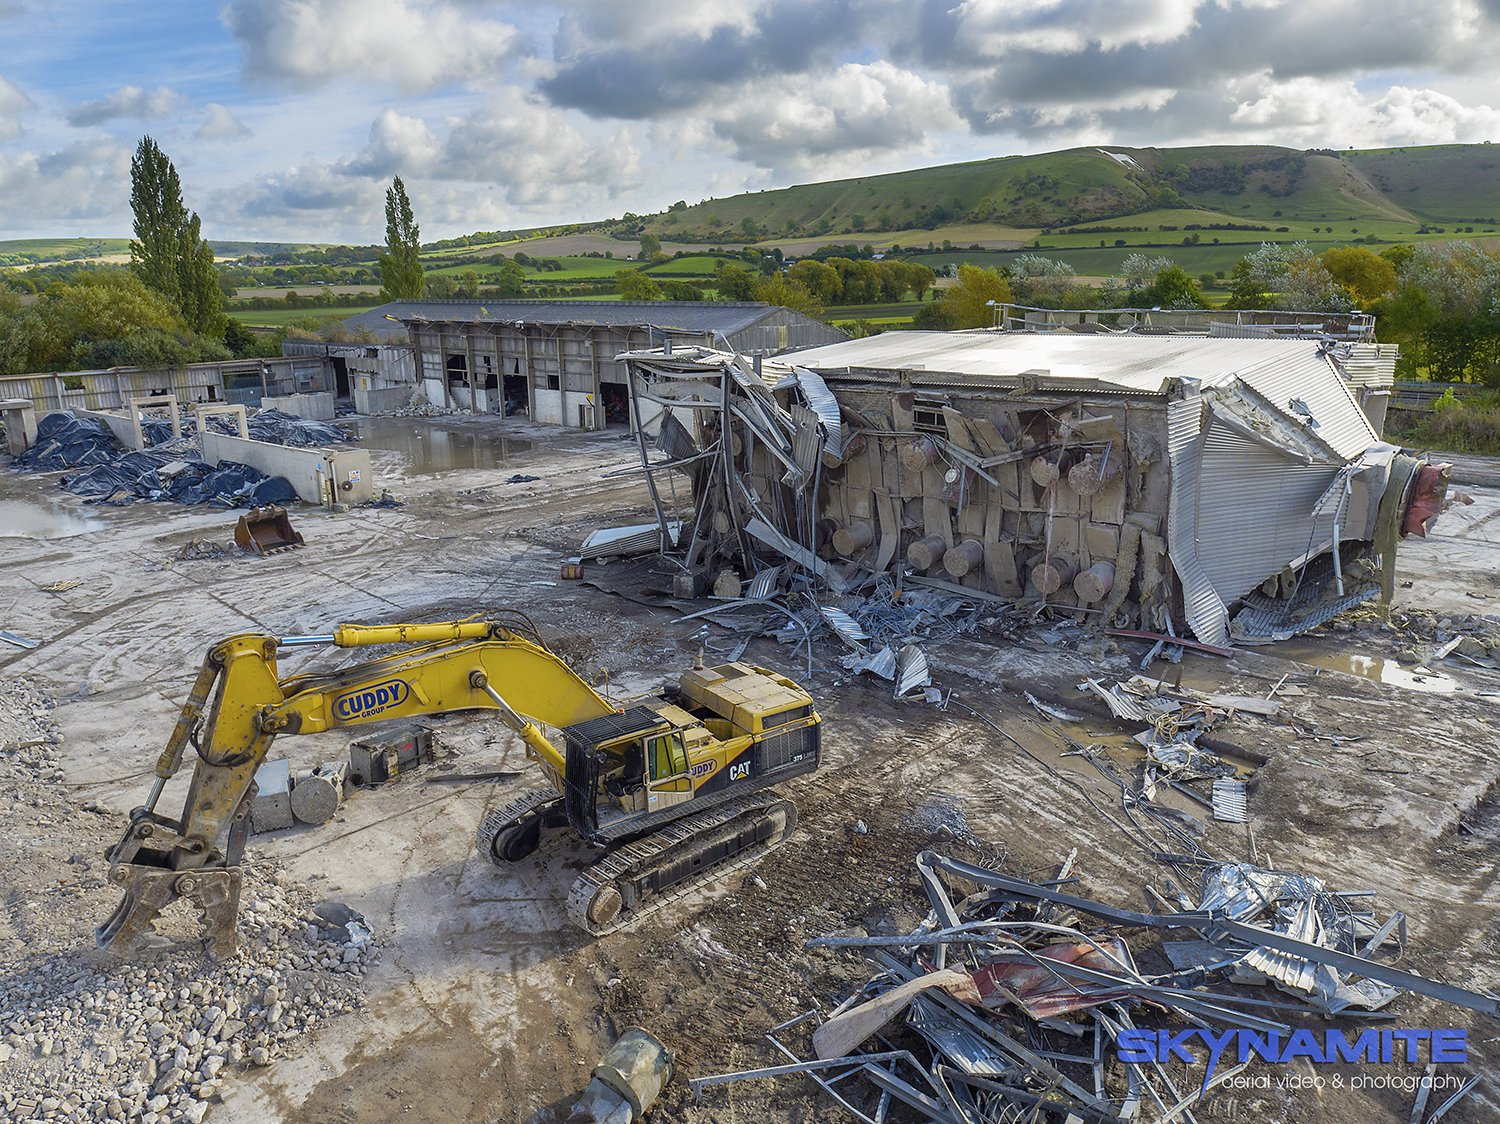 Demolition in Westbury, Wiltshire.